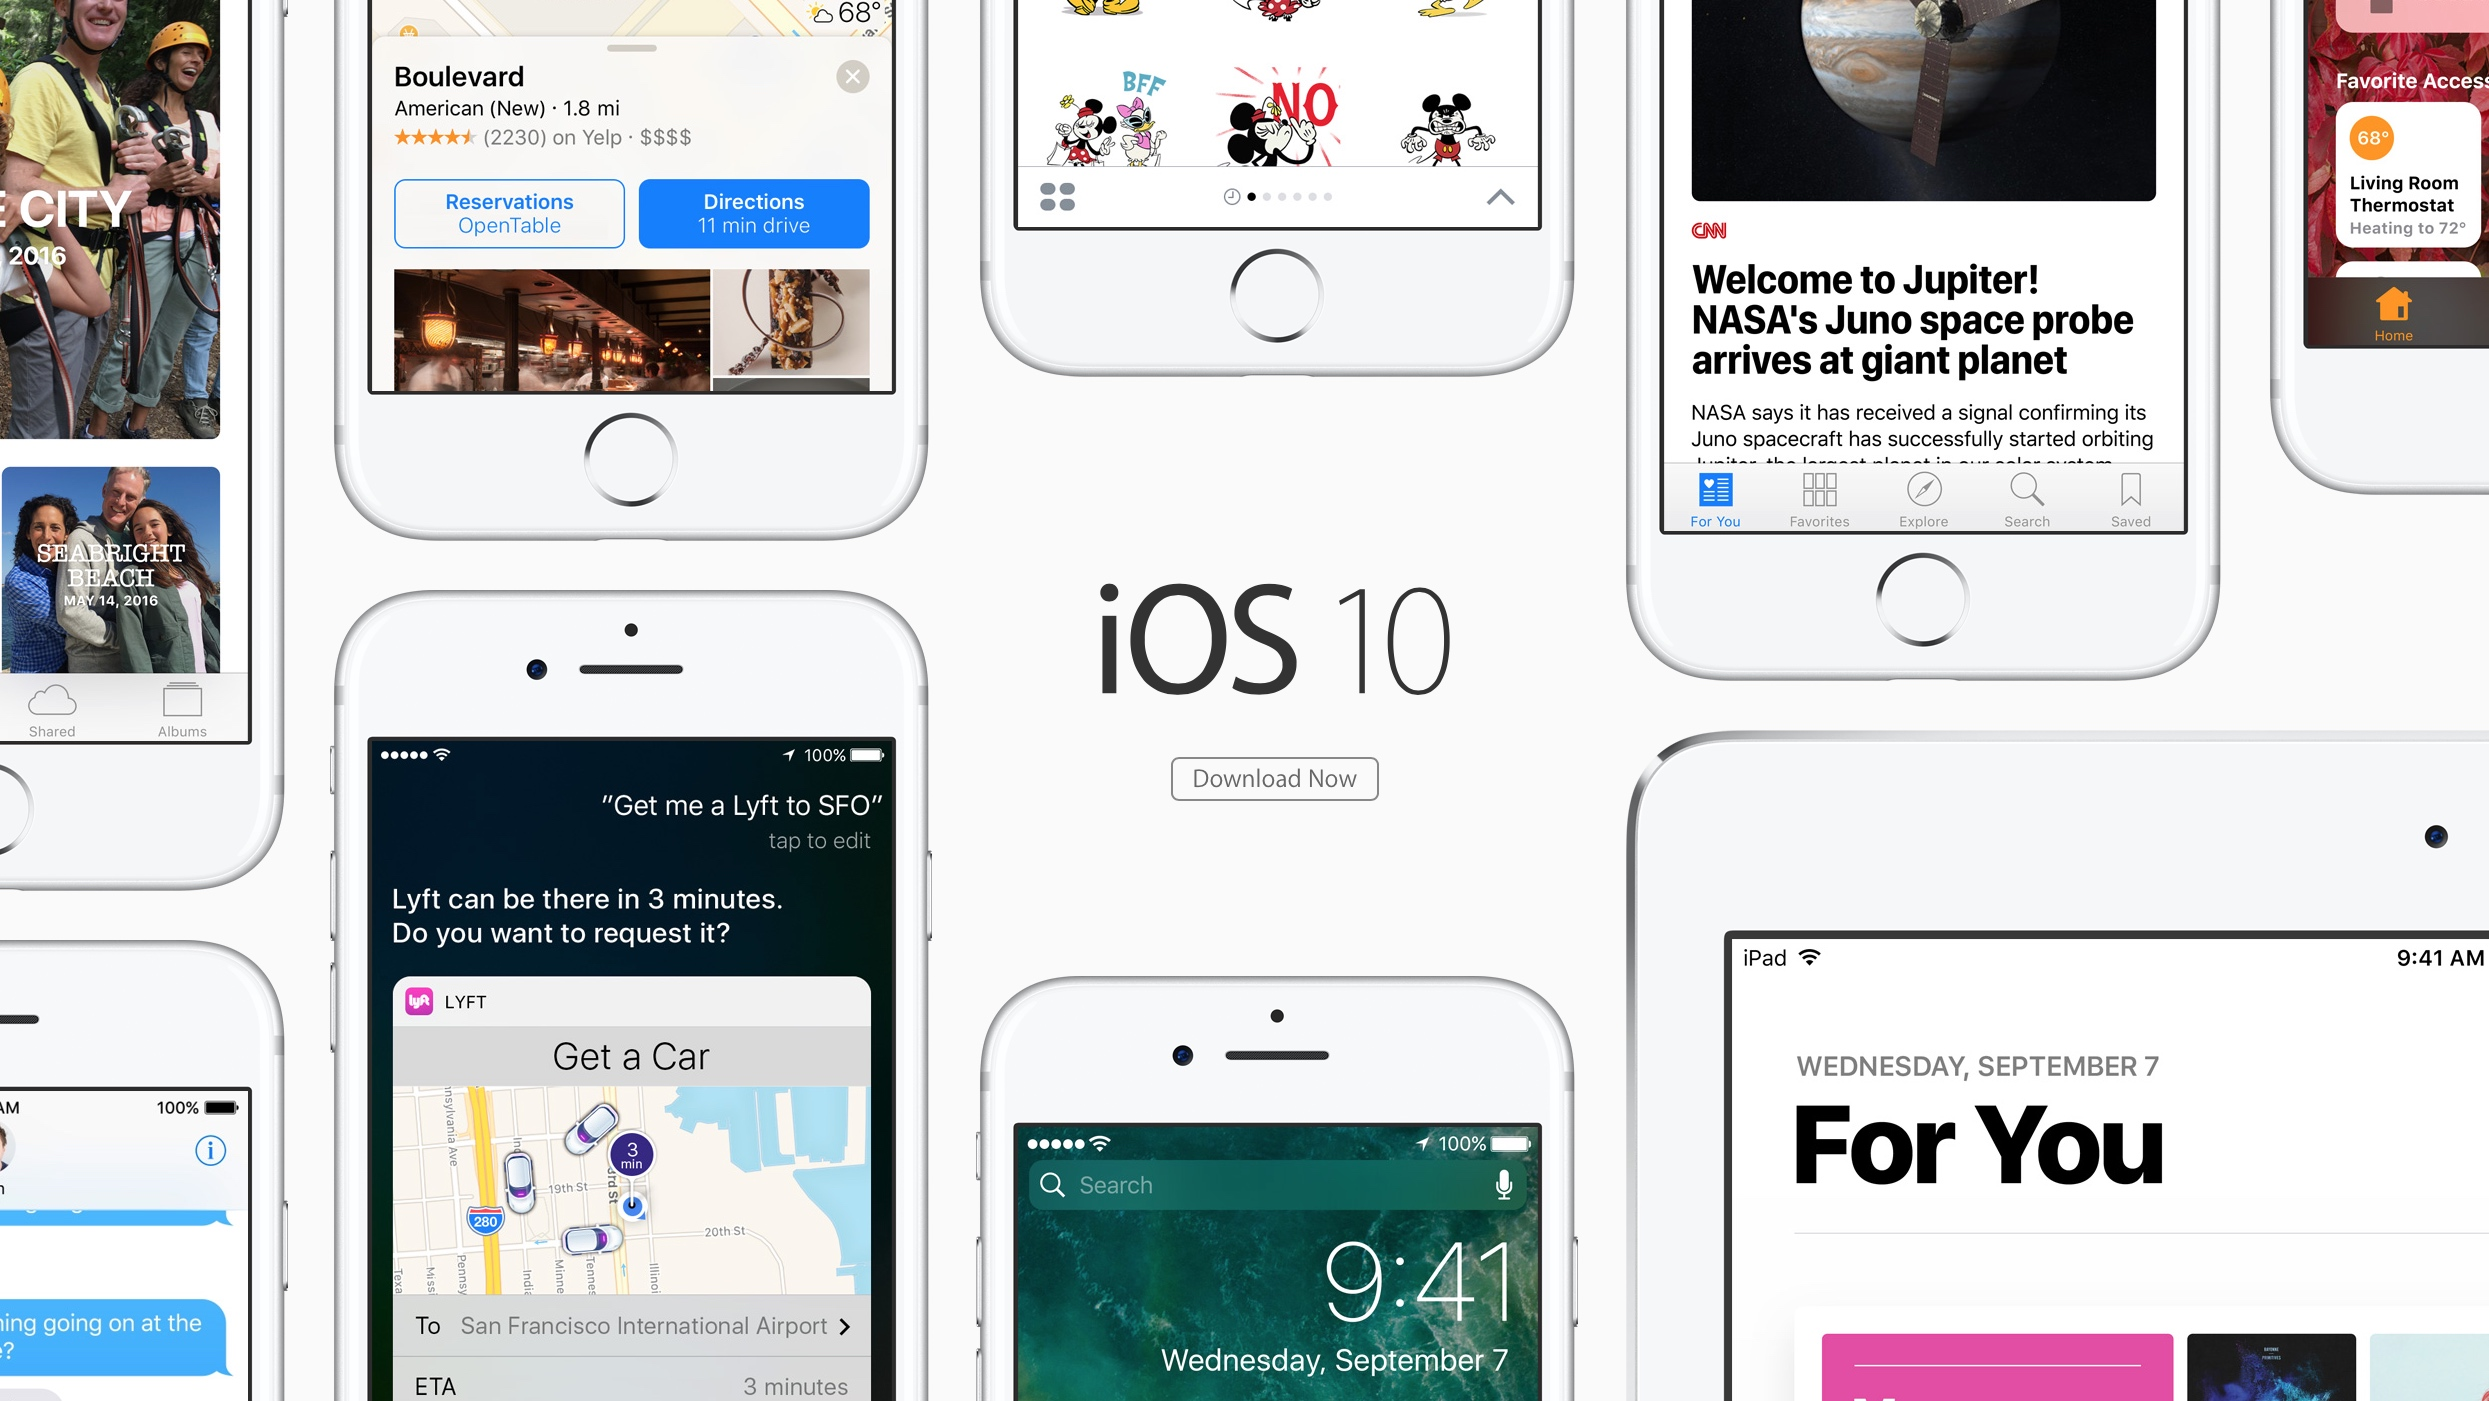 Ios 10 To Apple Releases Ios 10 For Iphone Ipad And Ipod Touch To The